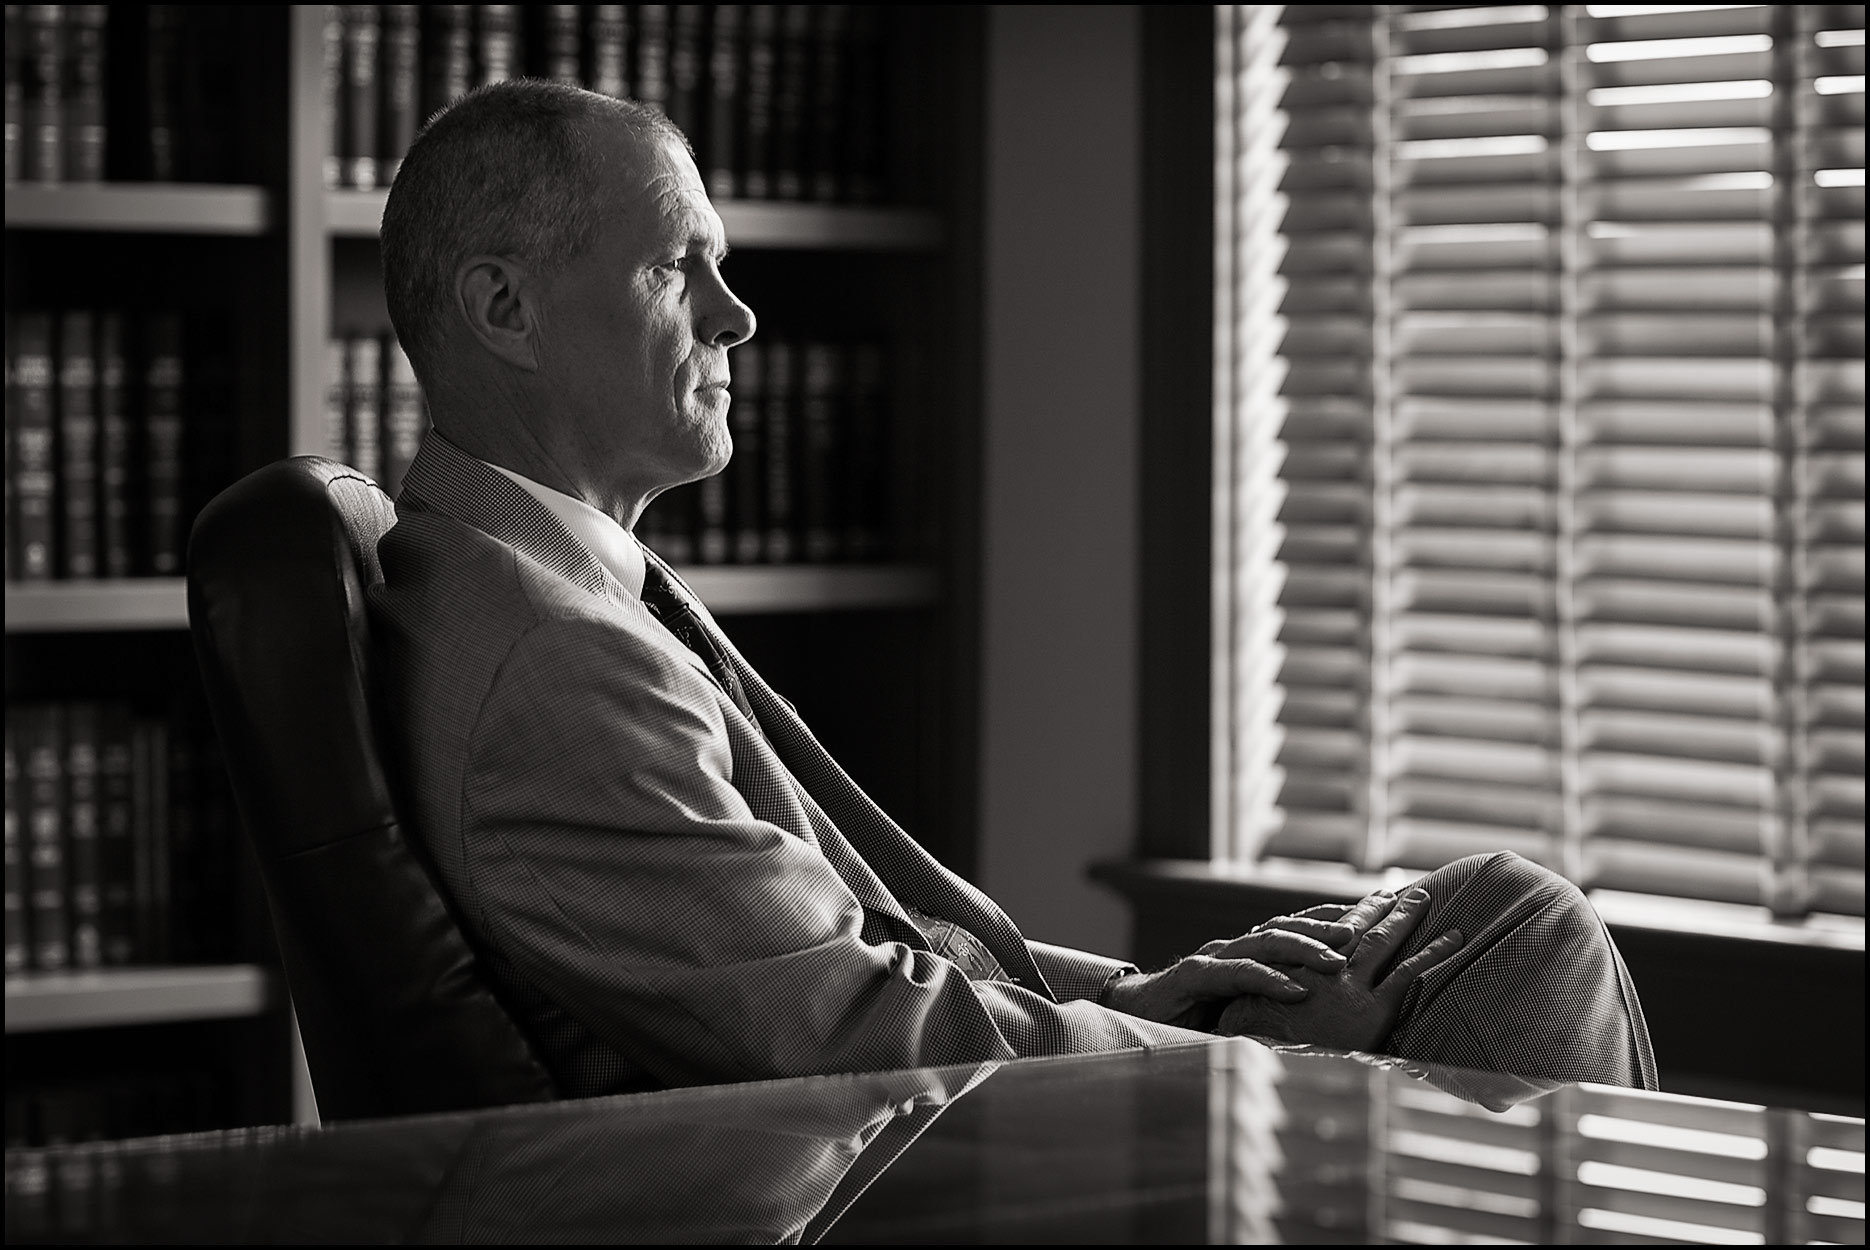 Profile portrait of an attorney in his office with blinds closed in the background.